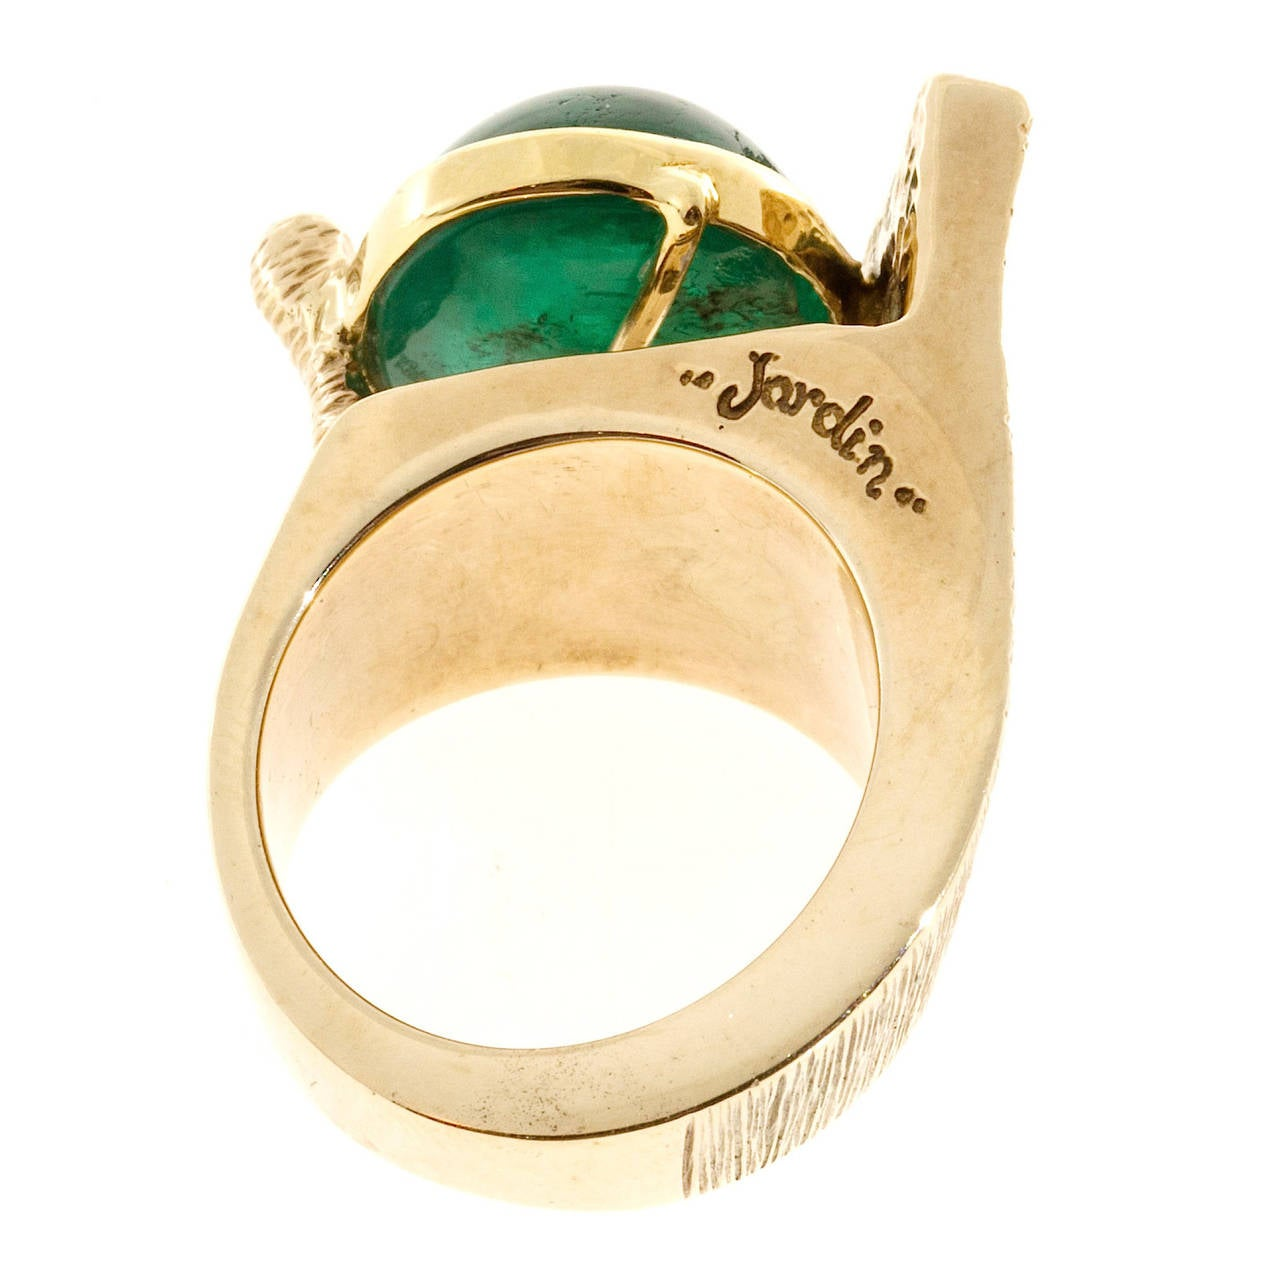 1950s Jordin Cabochon Emerald Gold Bezel Set Cocktail Ring 4